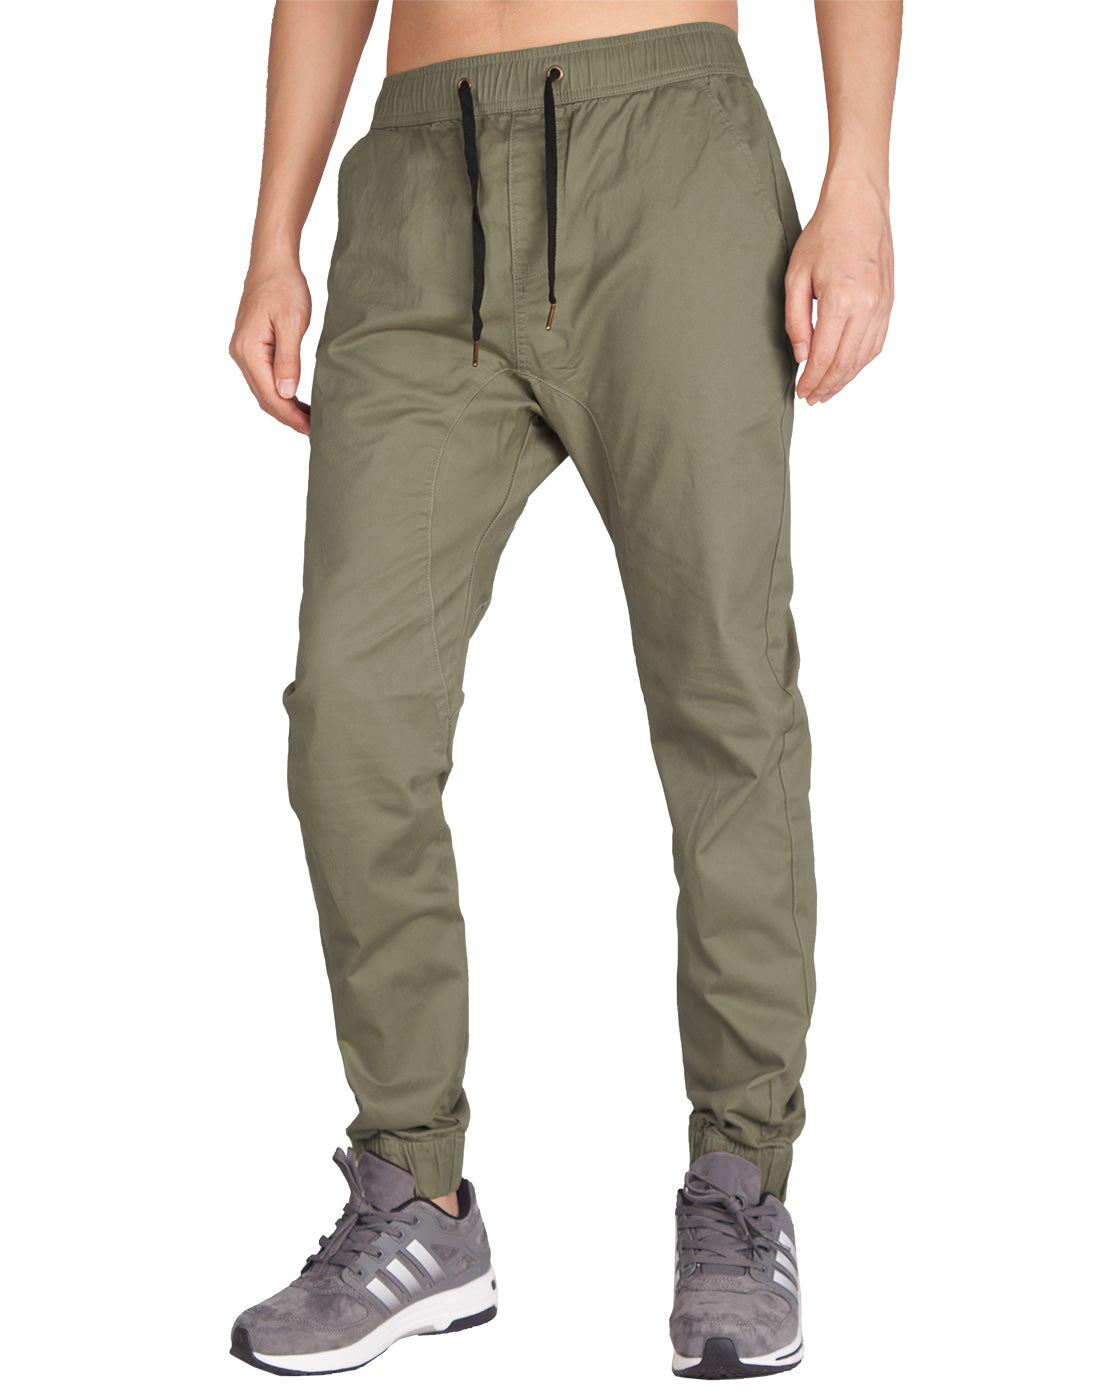 Man Drop Crotch Jogger Pants Grey Green - italymorn